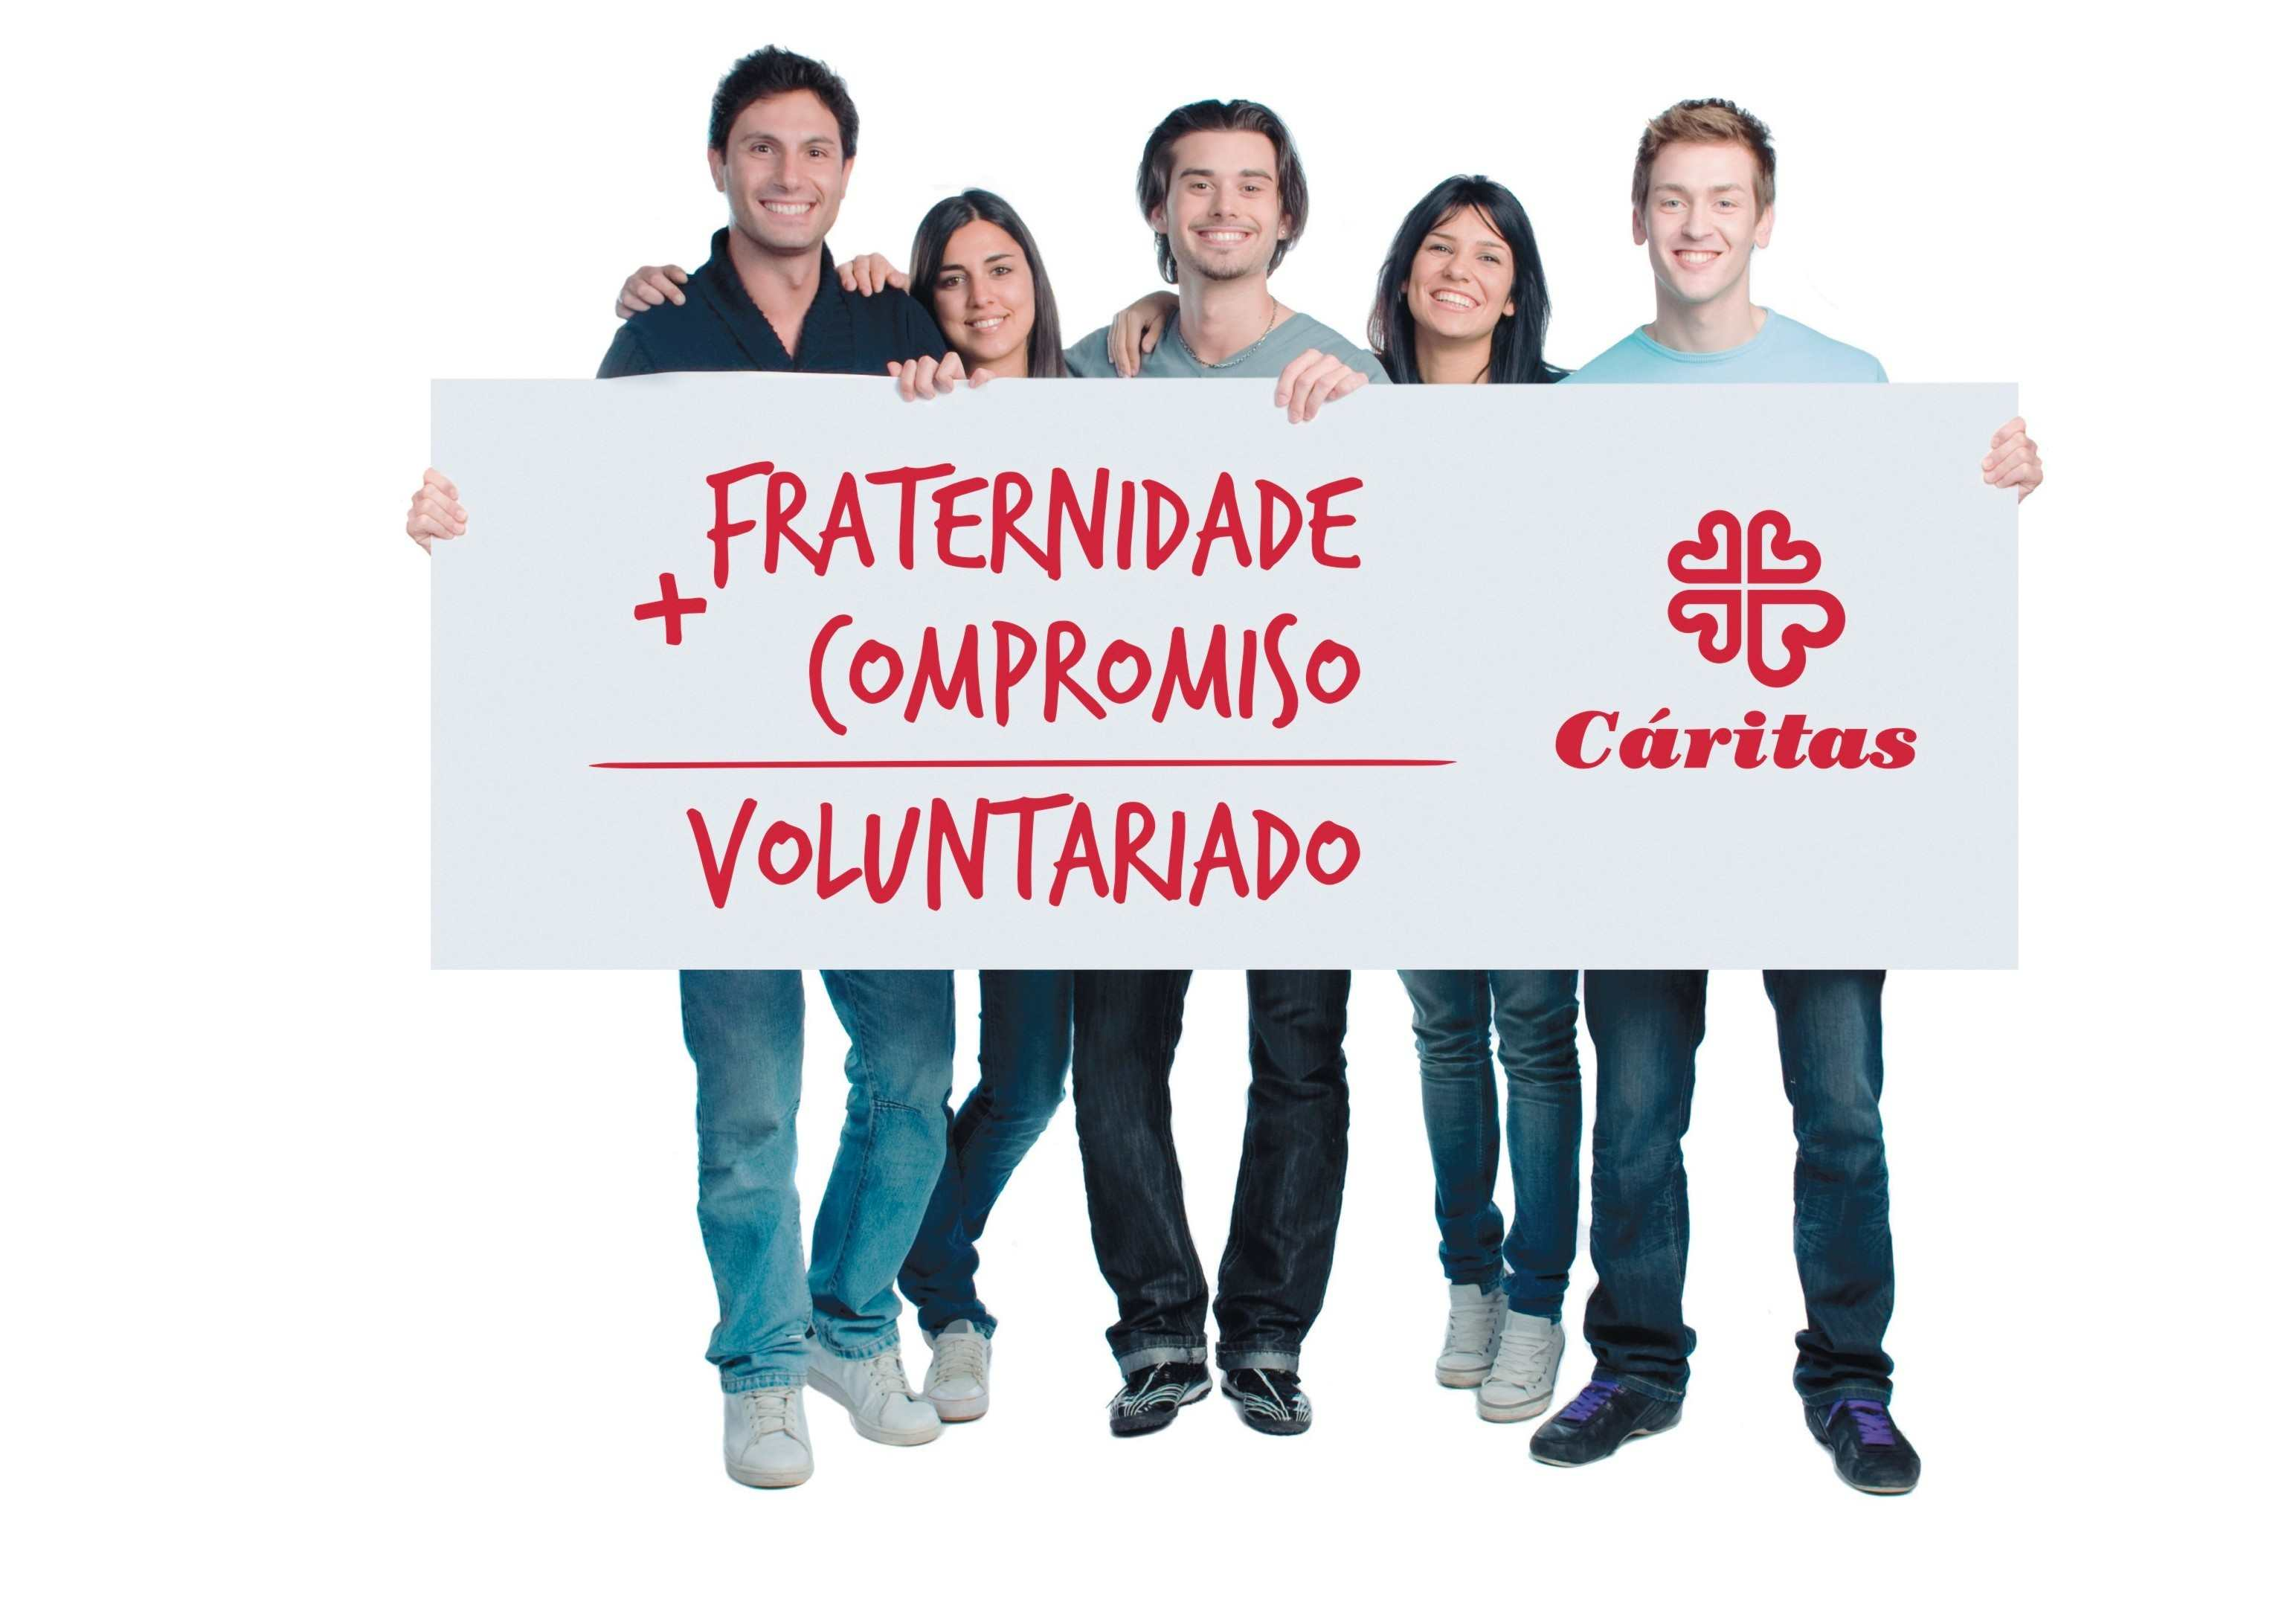 Voluntarios son voluntarios